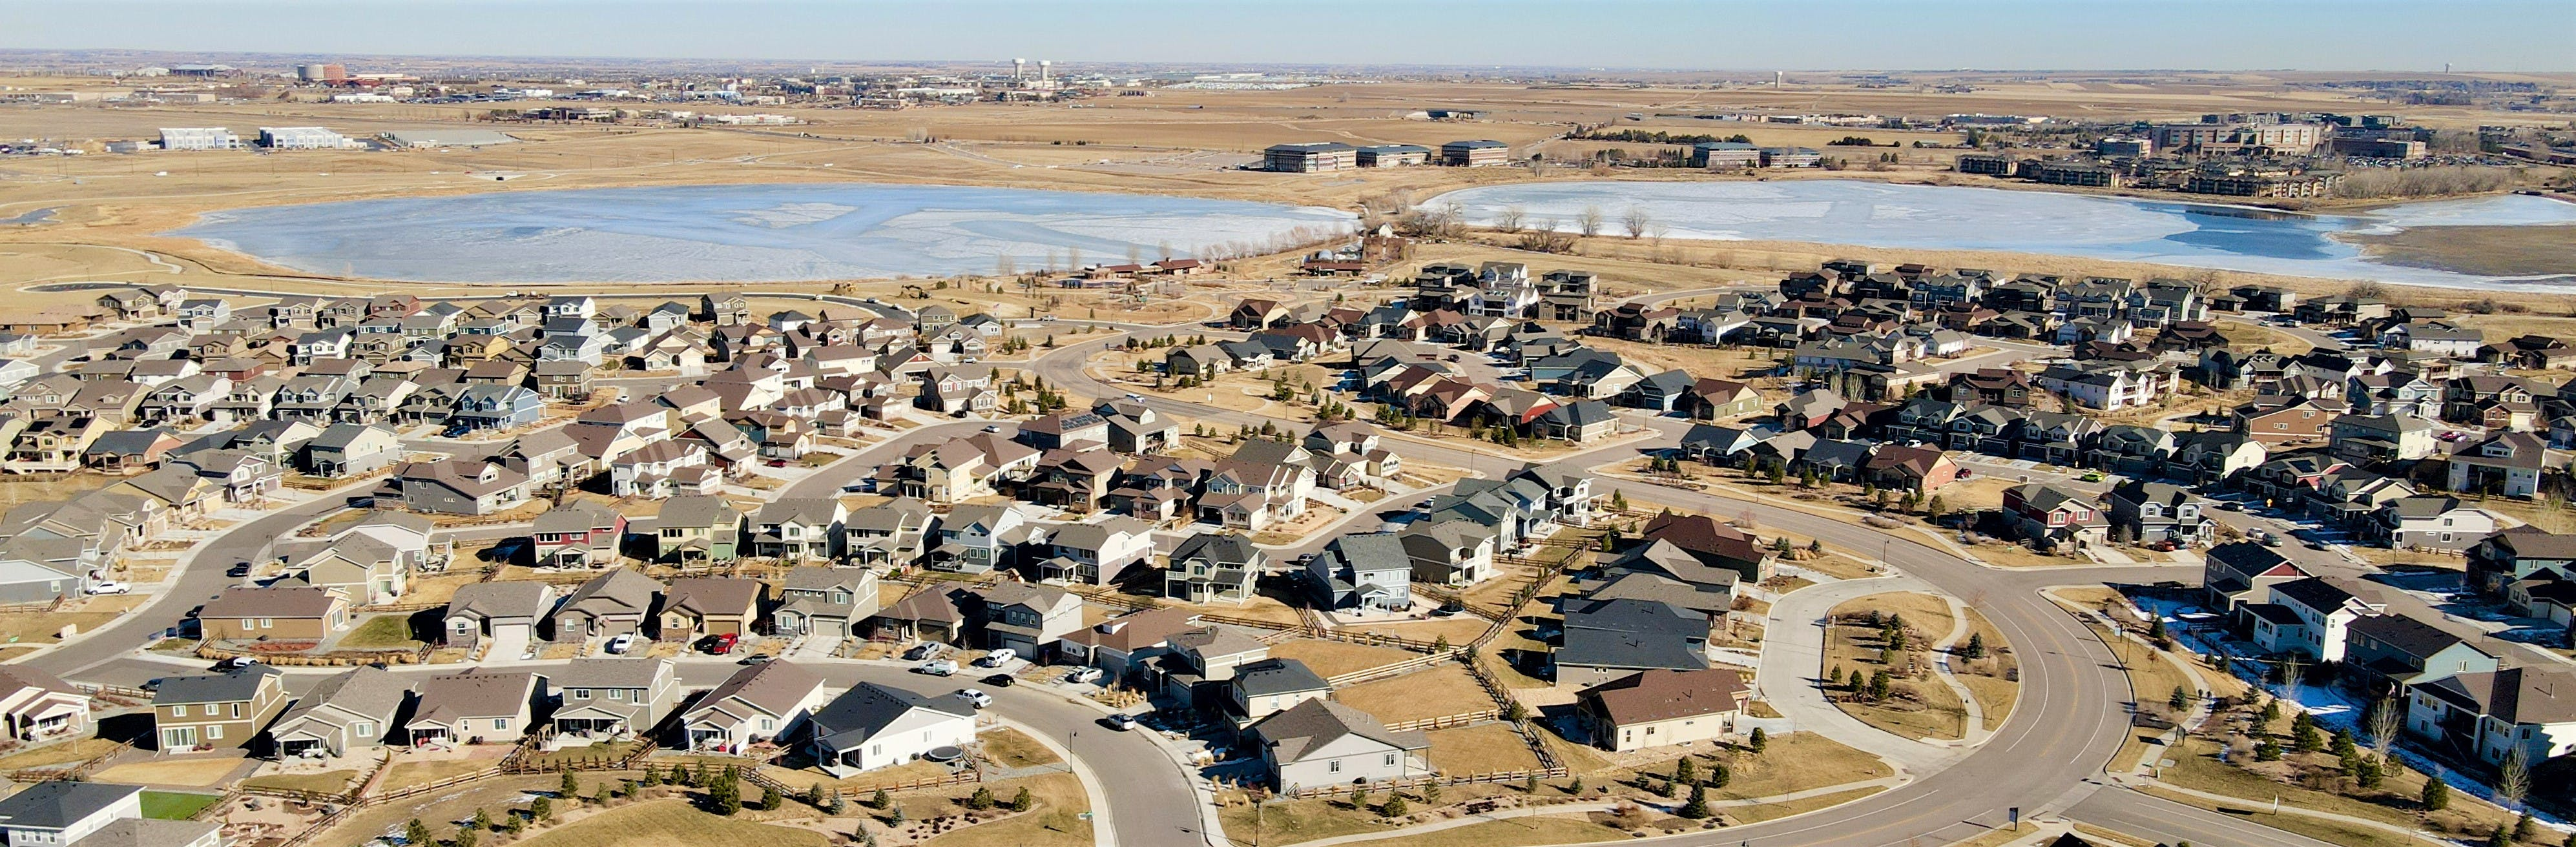 Image of local metropolitan district in Loveland, CO.